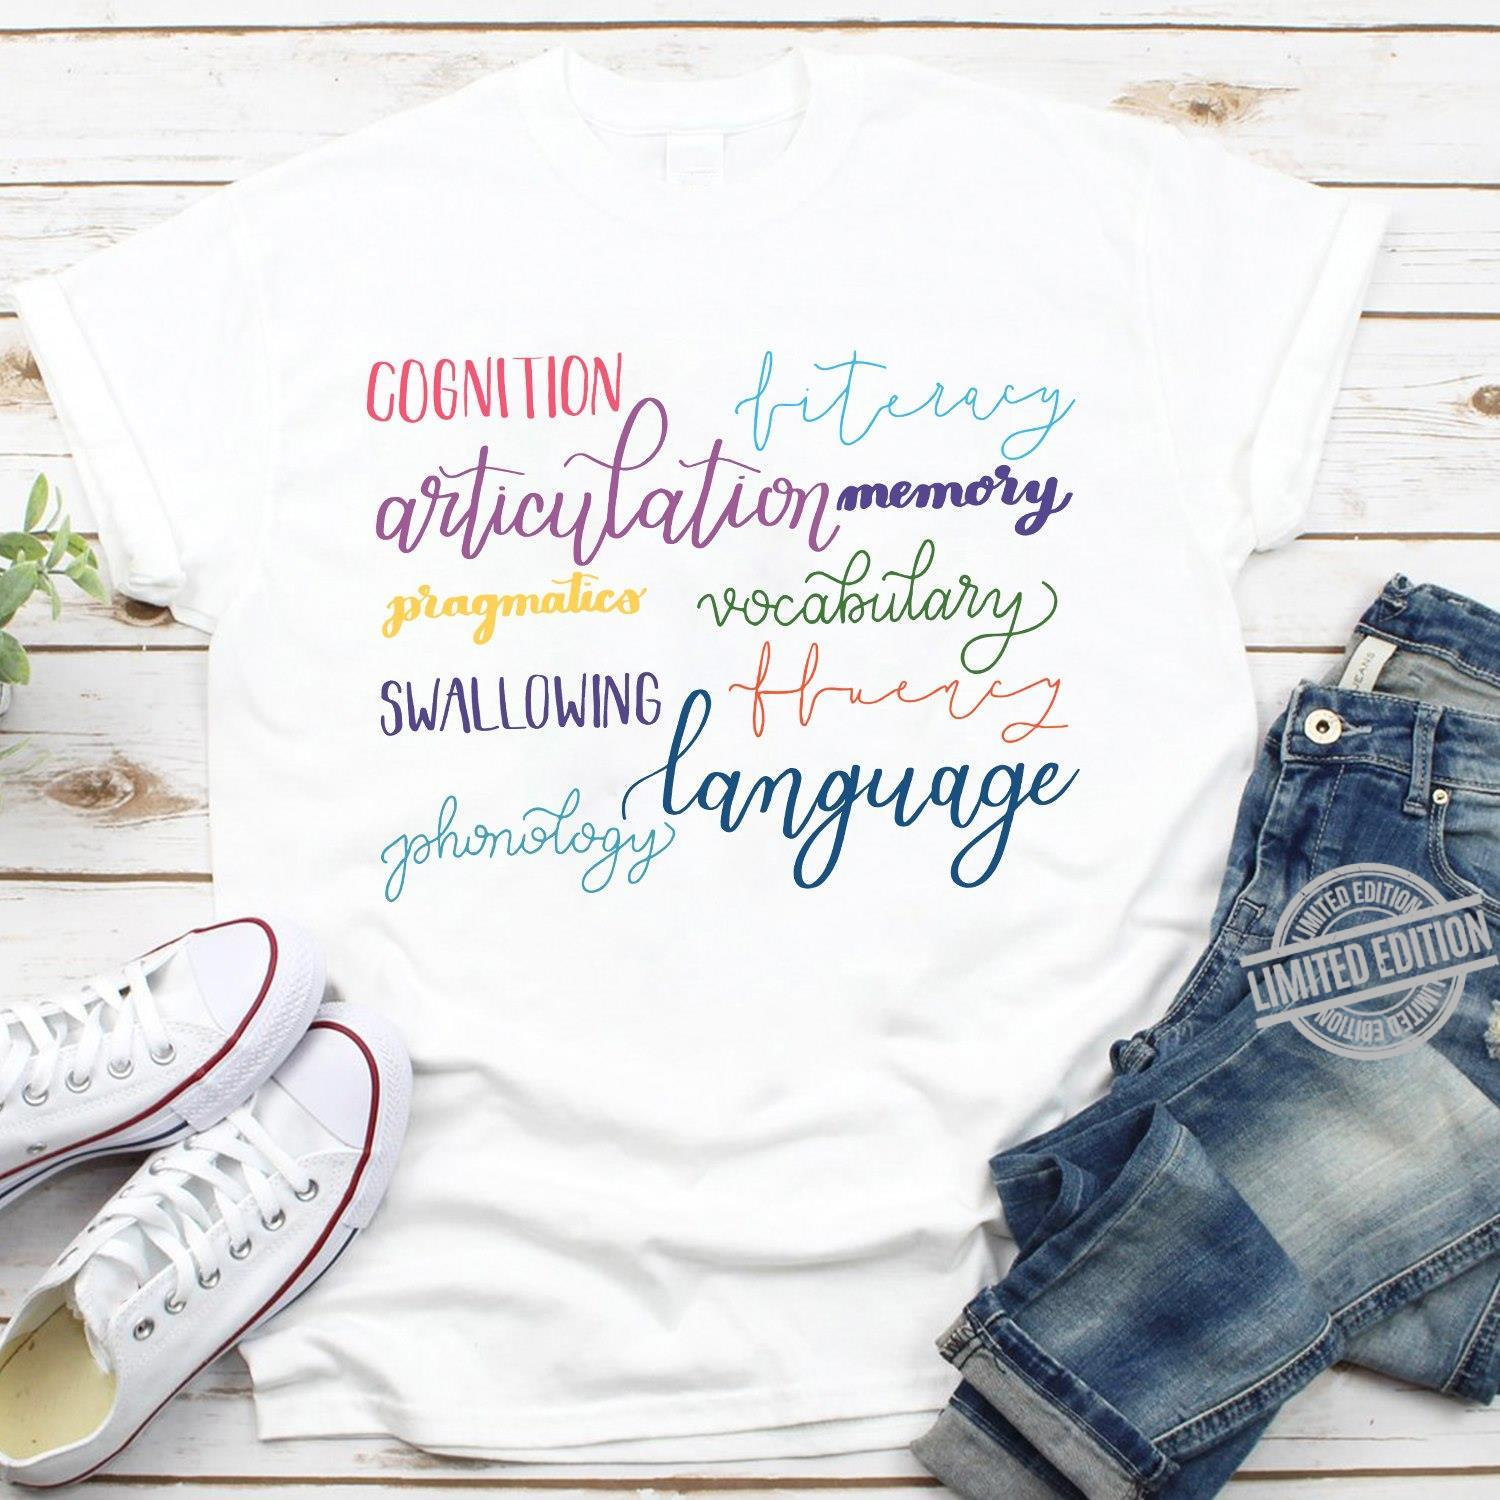 Cognition Articulation Memory Pragmatics Vocabulary Swallowing Language Shirt